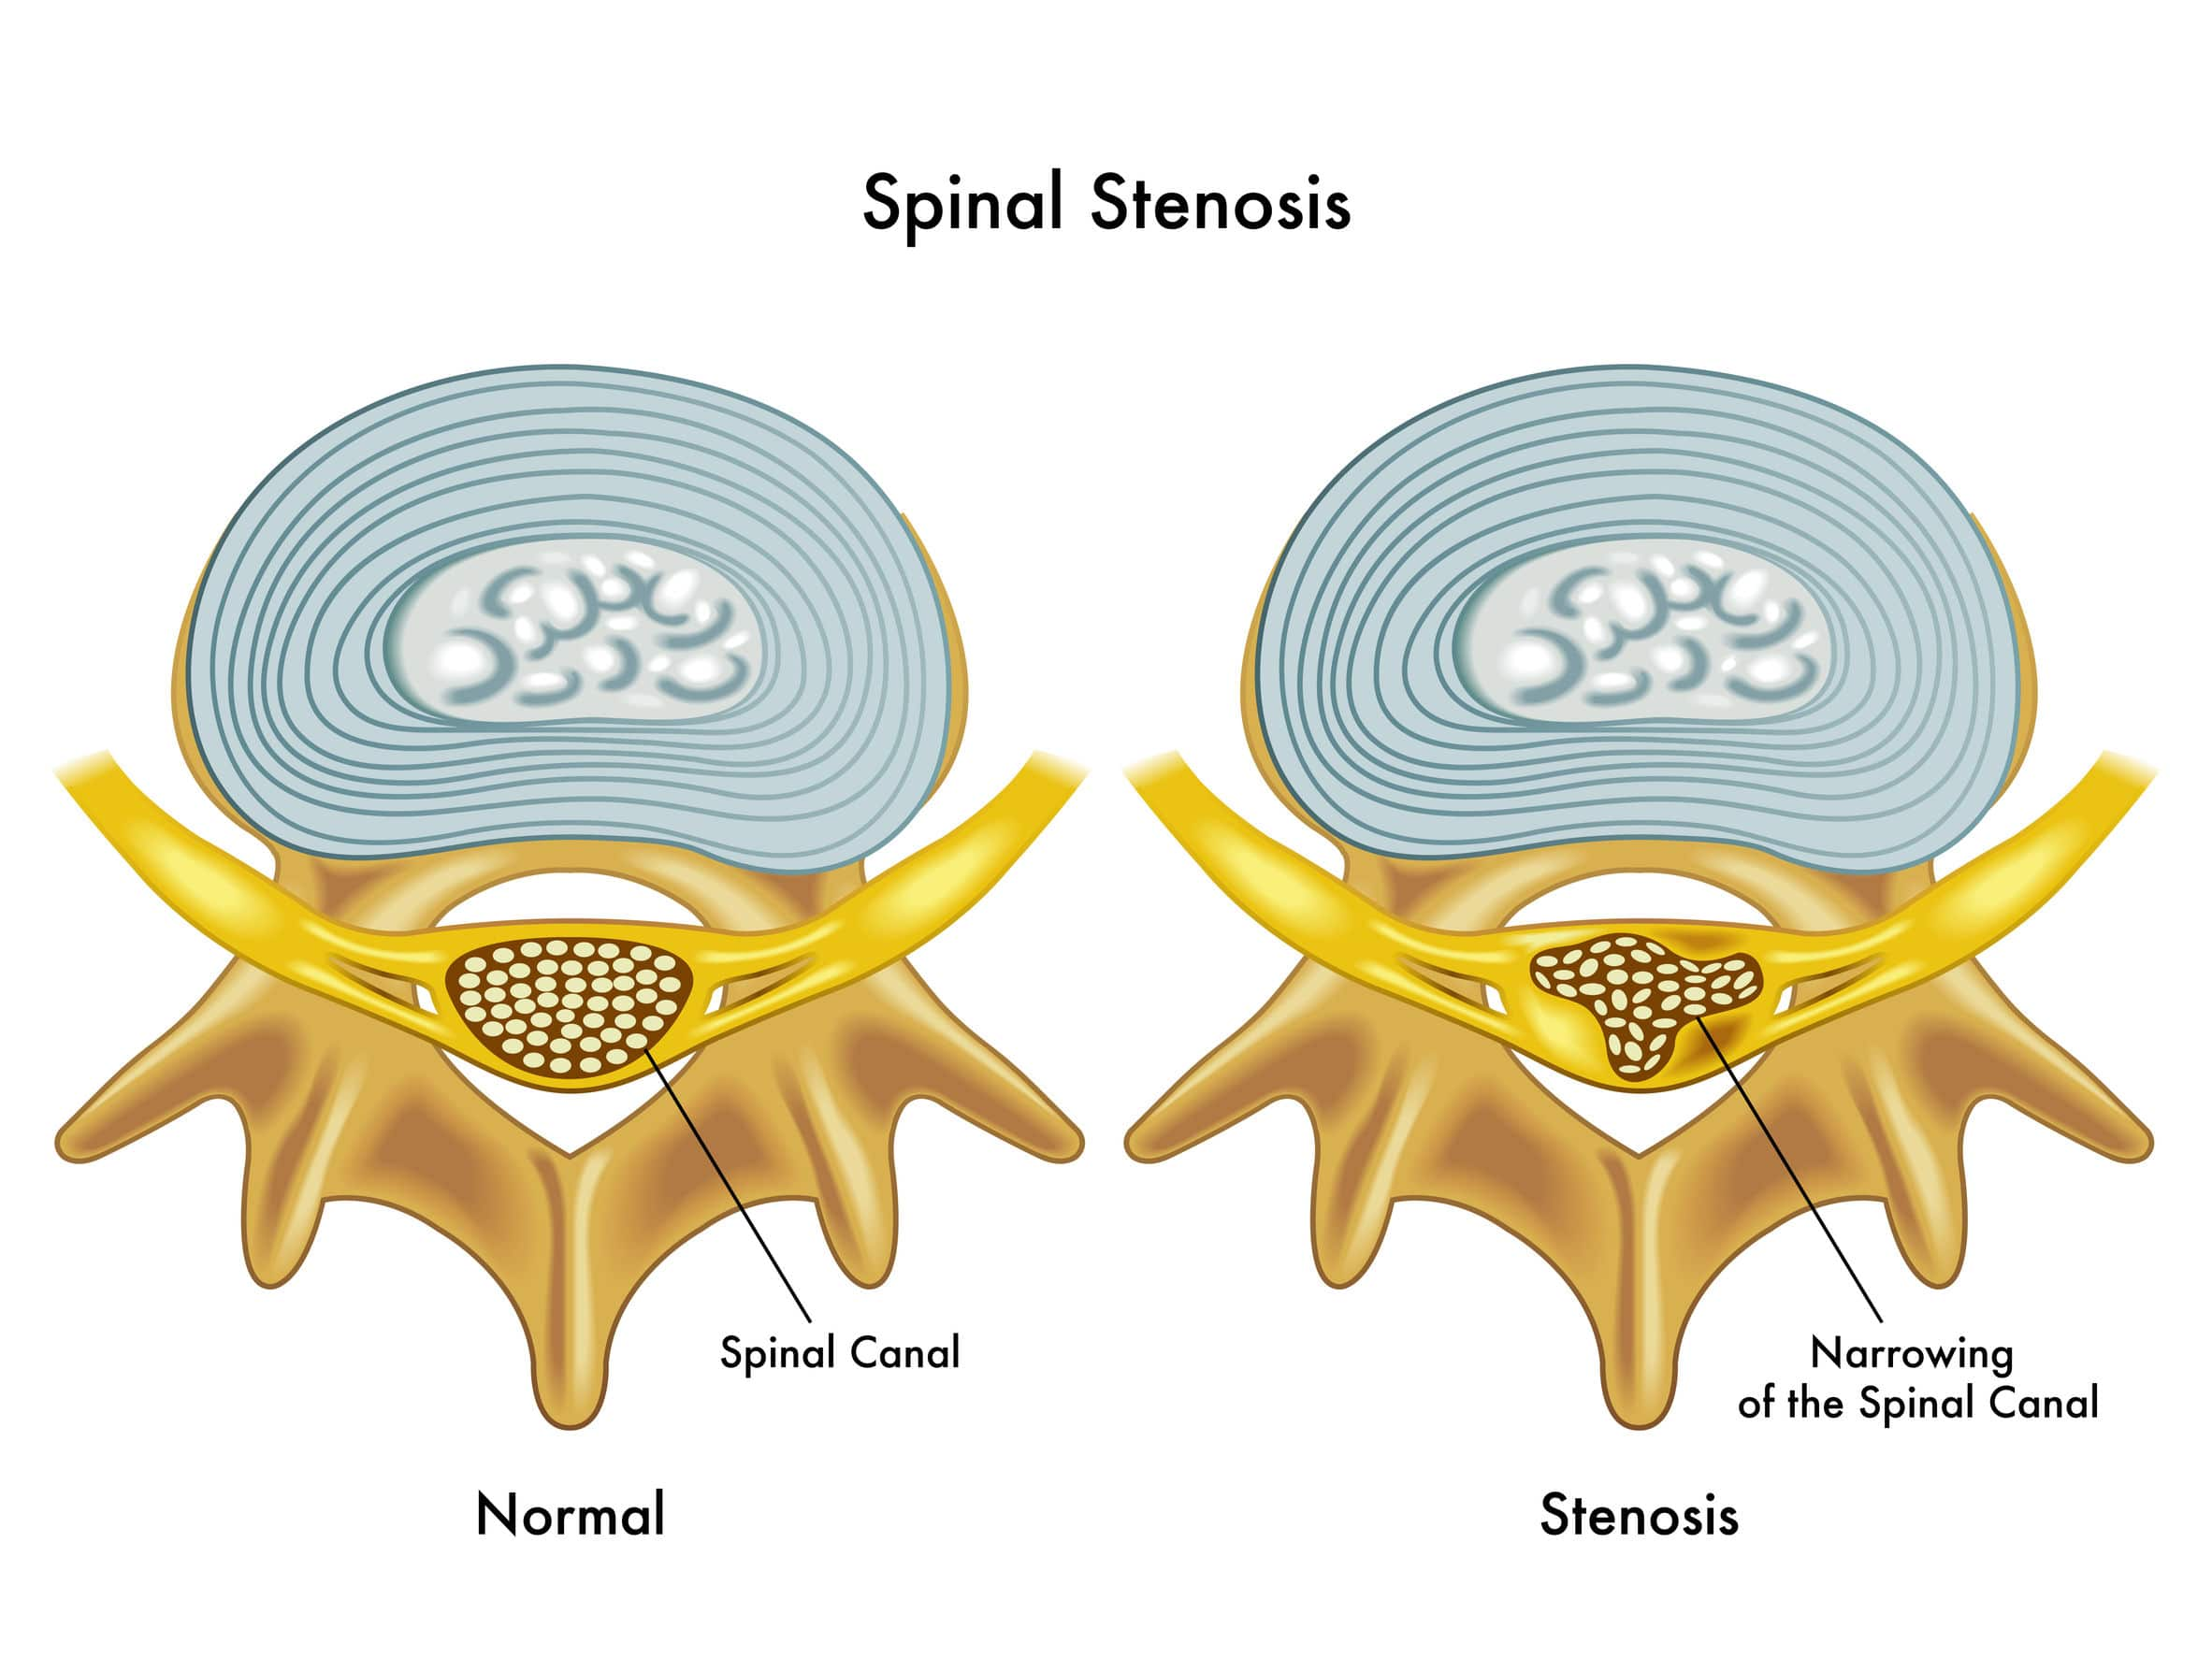 Image of Spinal Stenosis